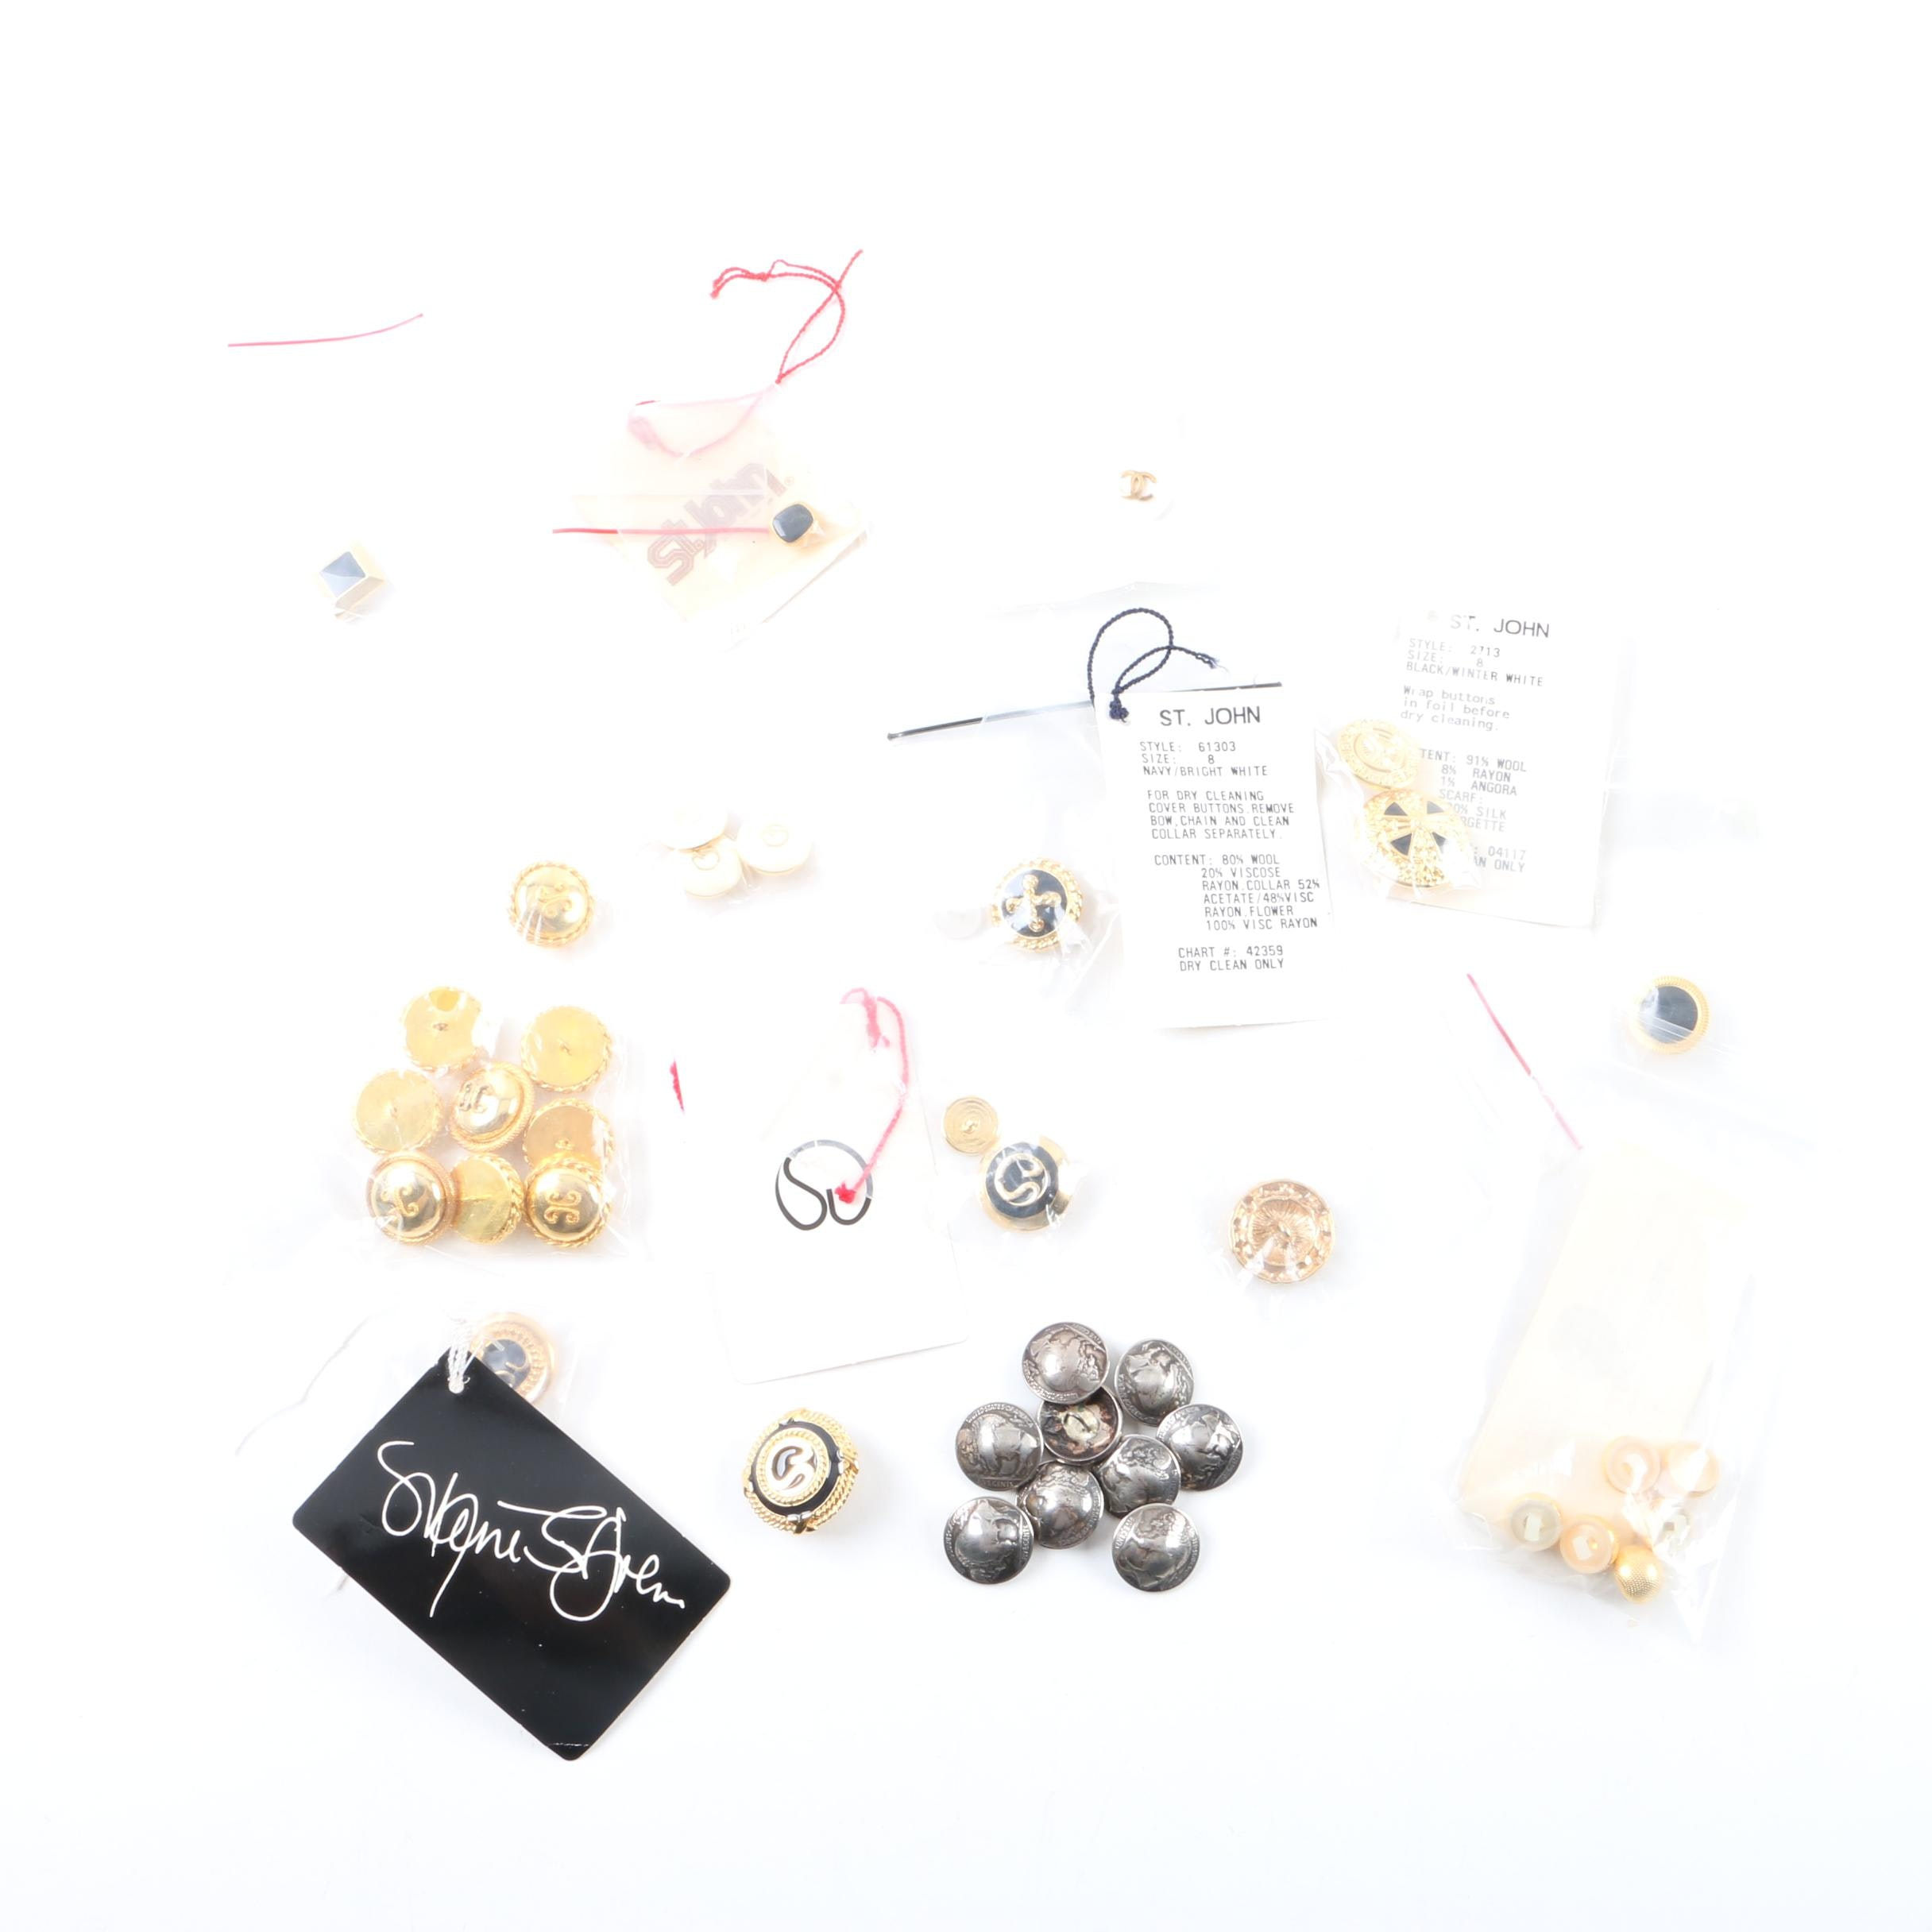 Buffalo Nickel Buttons and Other Buttons